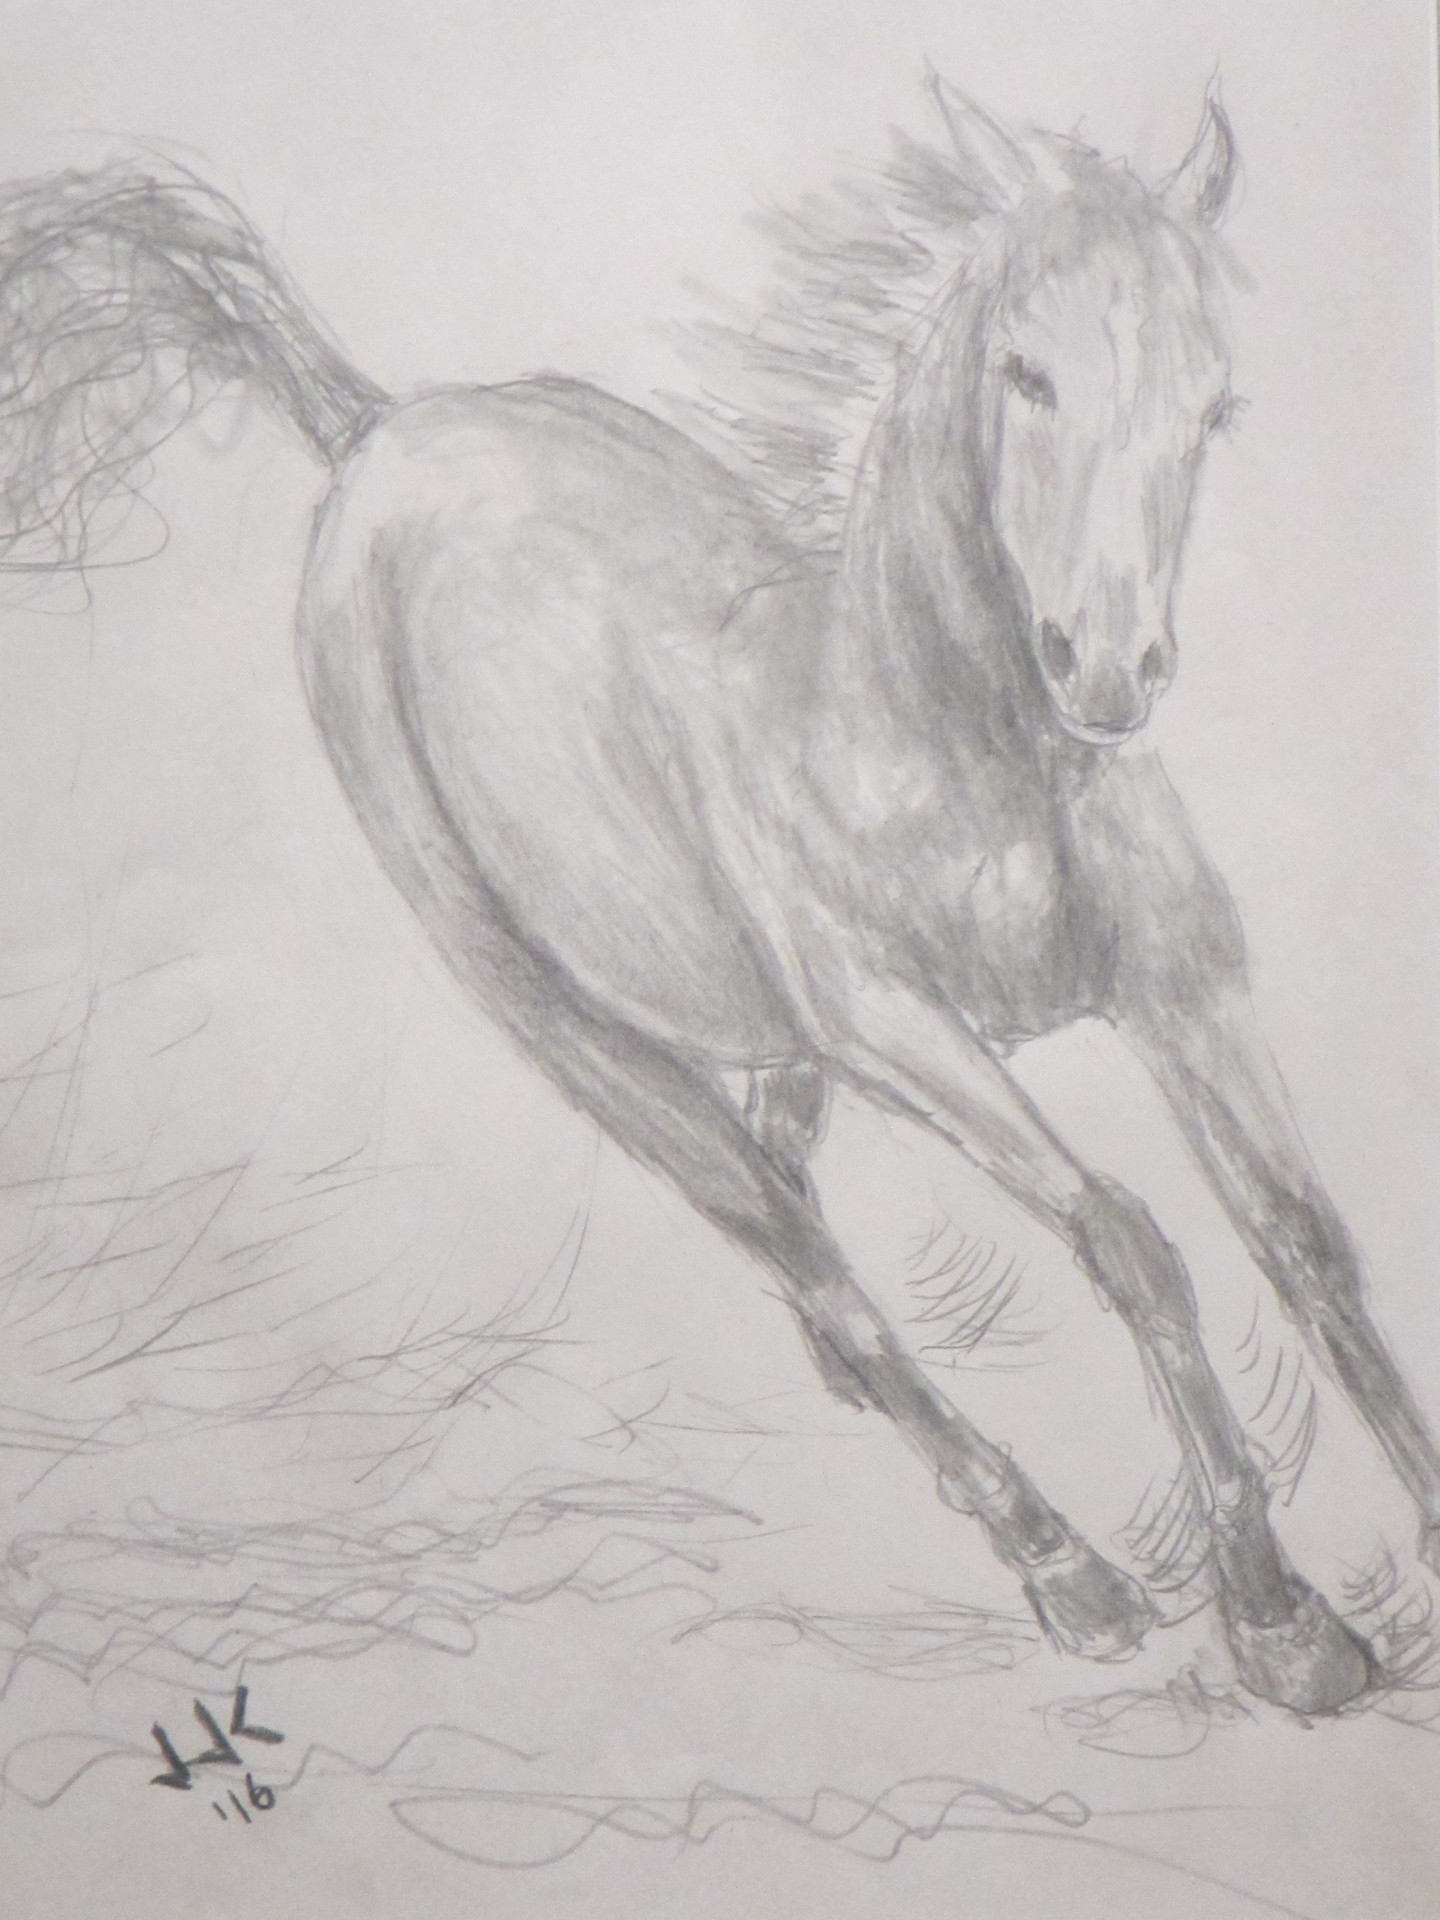 Pencil drawing of a horse leaning into a turn at full speed.